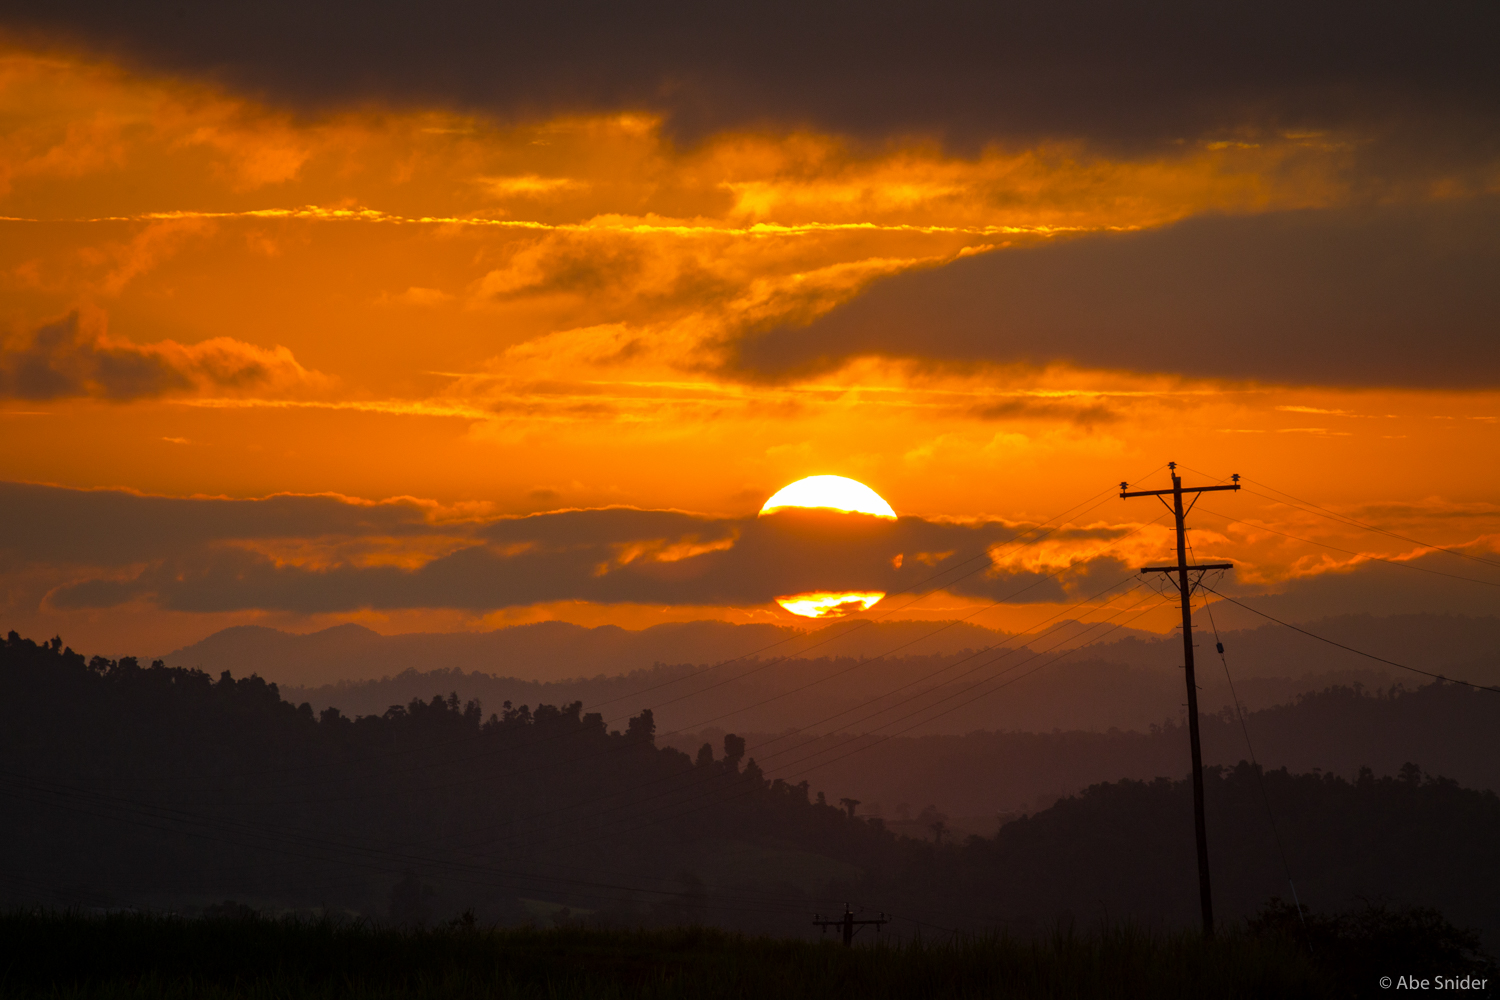 To wrap things up, a sunset on the Atherton Tablelands west of Cairns, Australia.